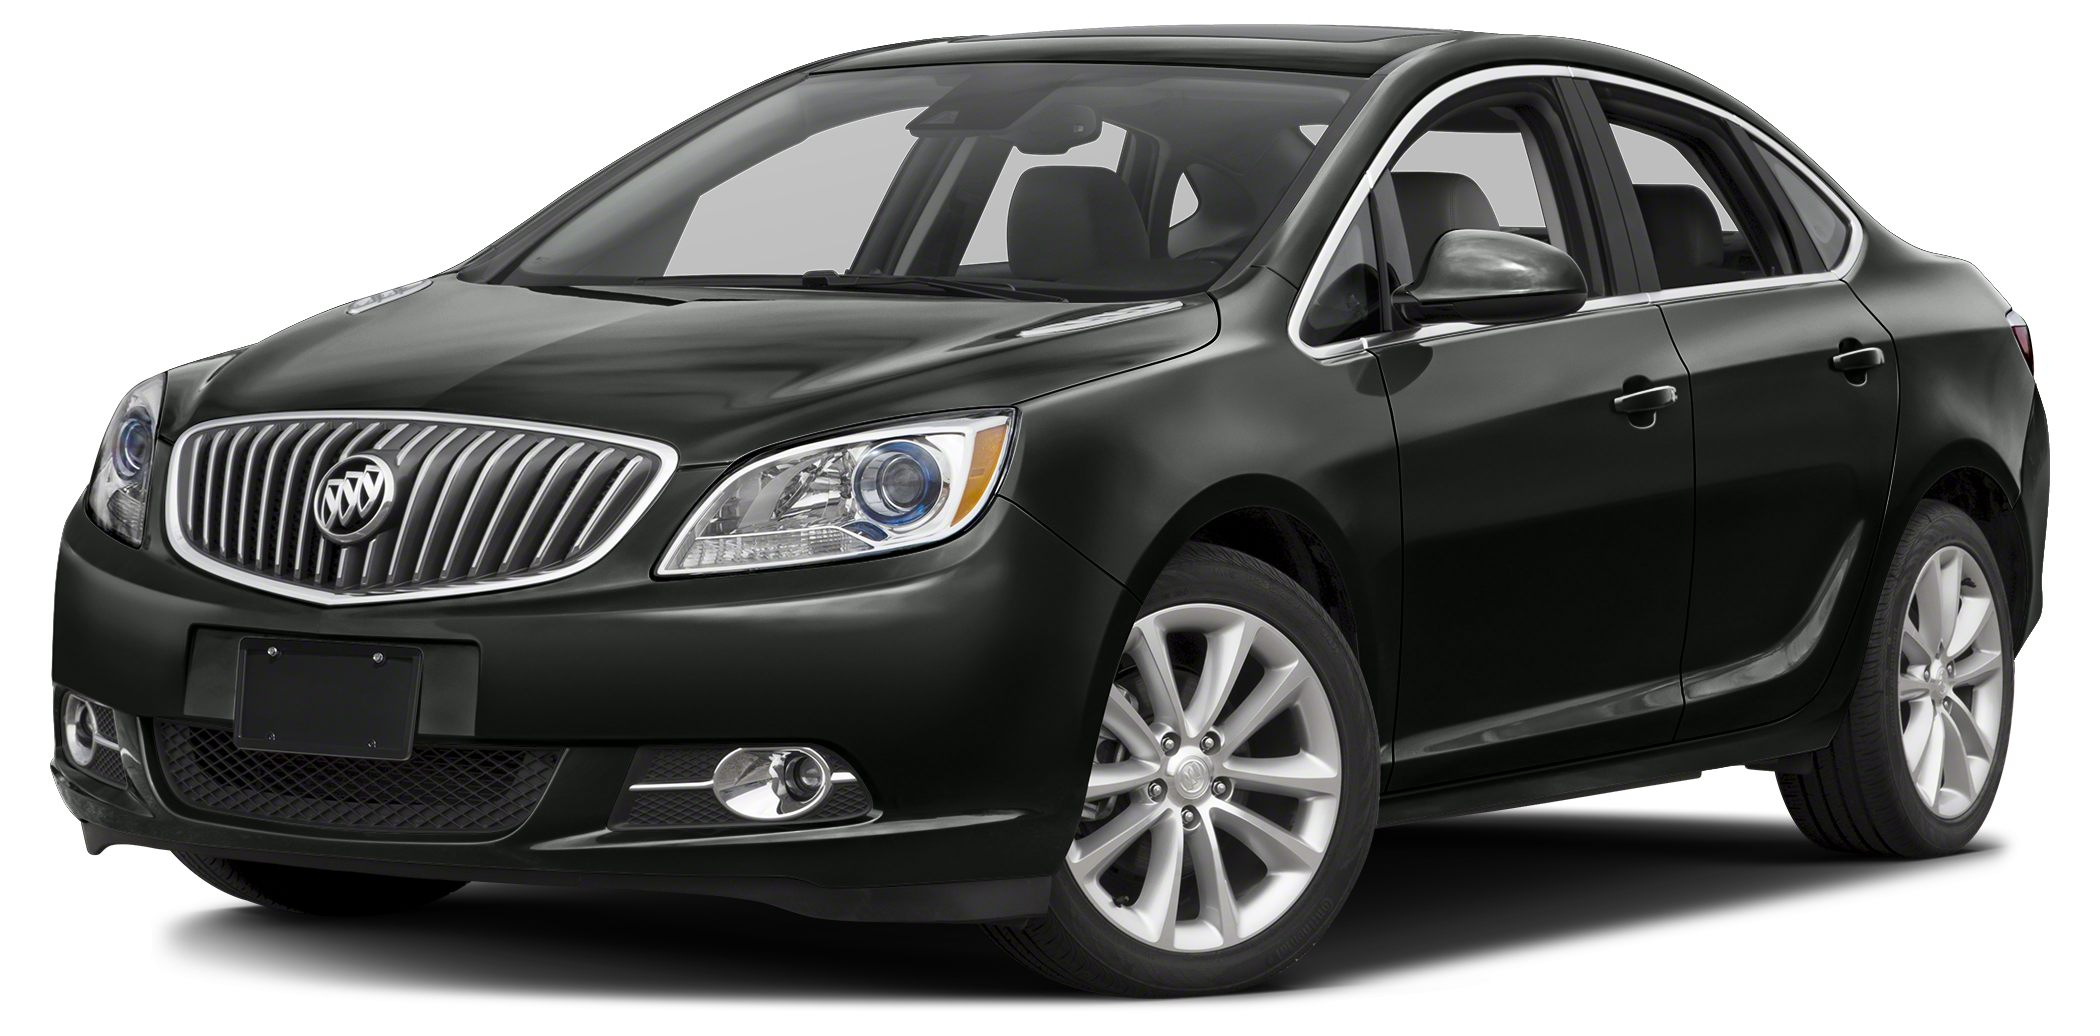 2015 Buick Verano Leather Group CARFAX 1-Owner Extra Clean ONLY 25885 Miles EPA 32 MPG Hwy21